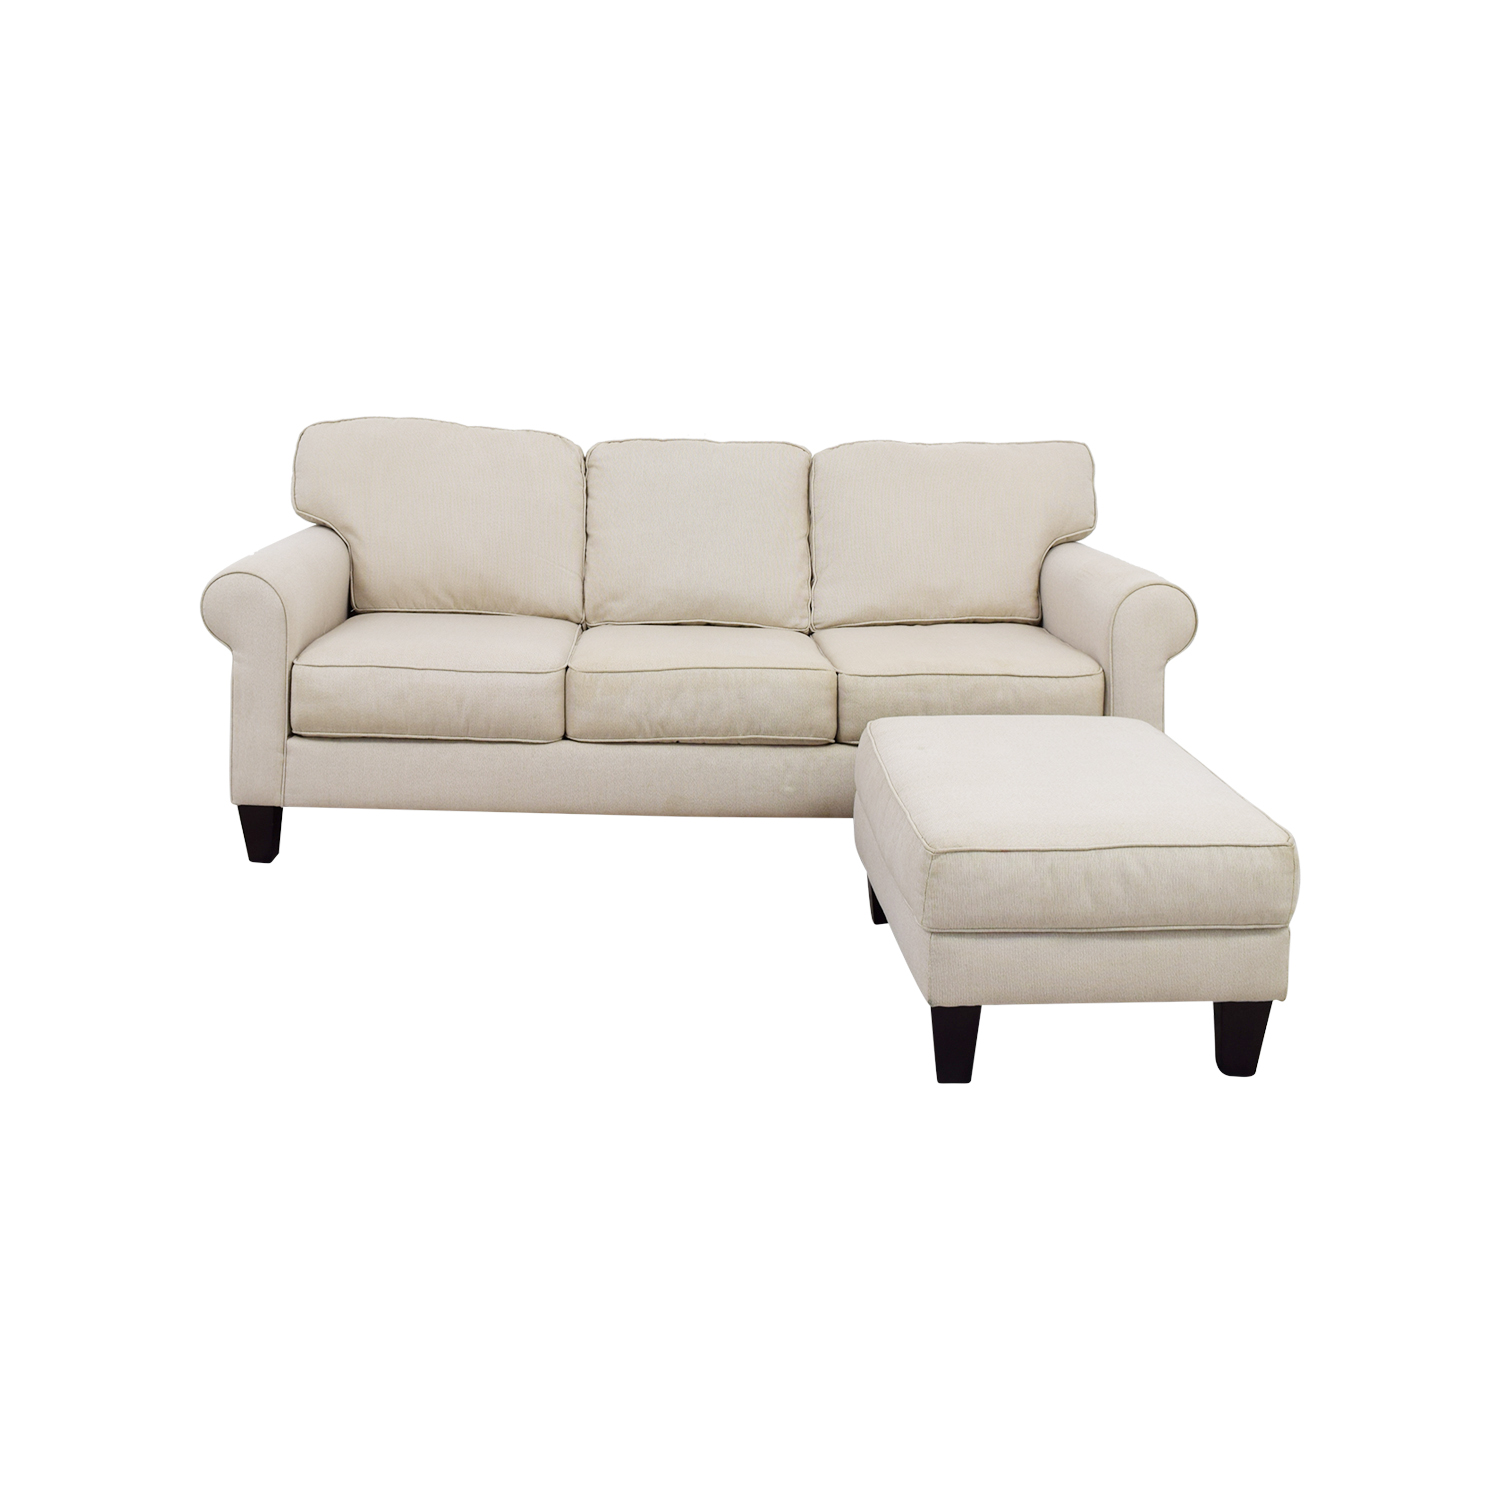 Raymour & Flanigan Raymour & Flanigan White Three Seat Sofa and Ottoman used